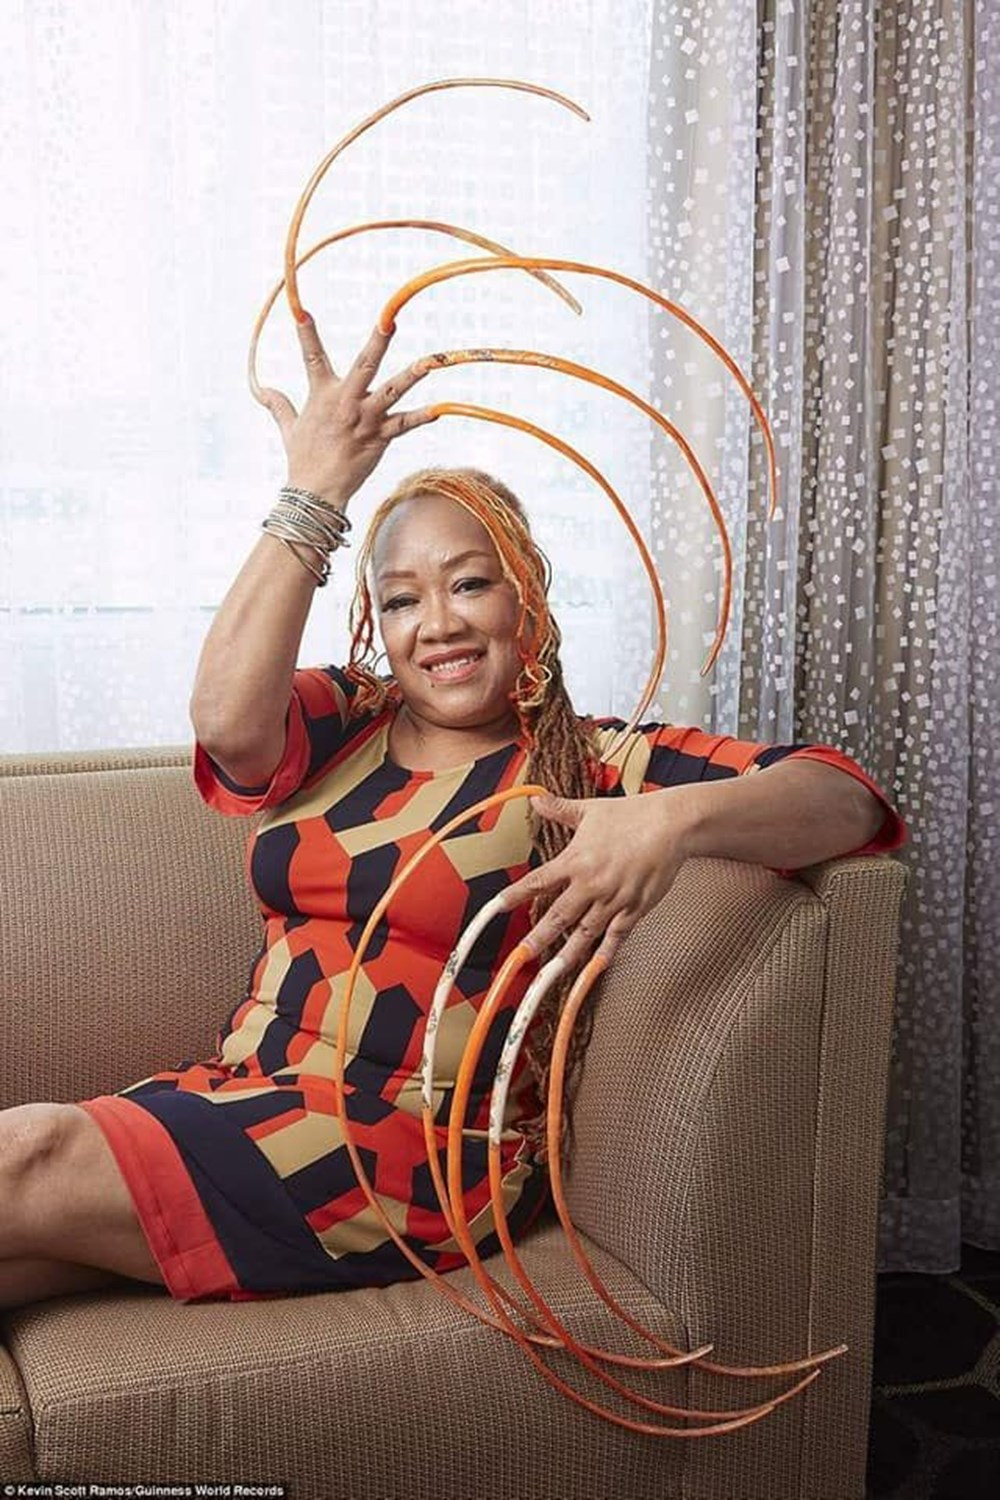 7 meters 33 centimeters: The person with the longest nails in the world cut their nails after 30 years - 12